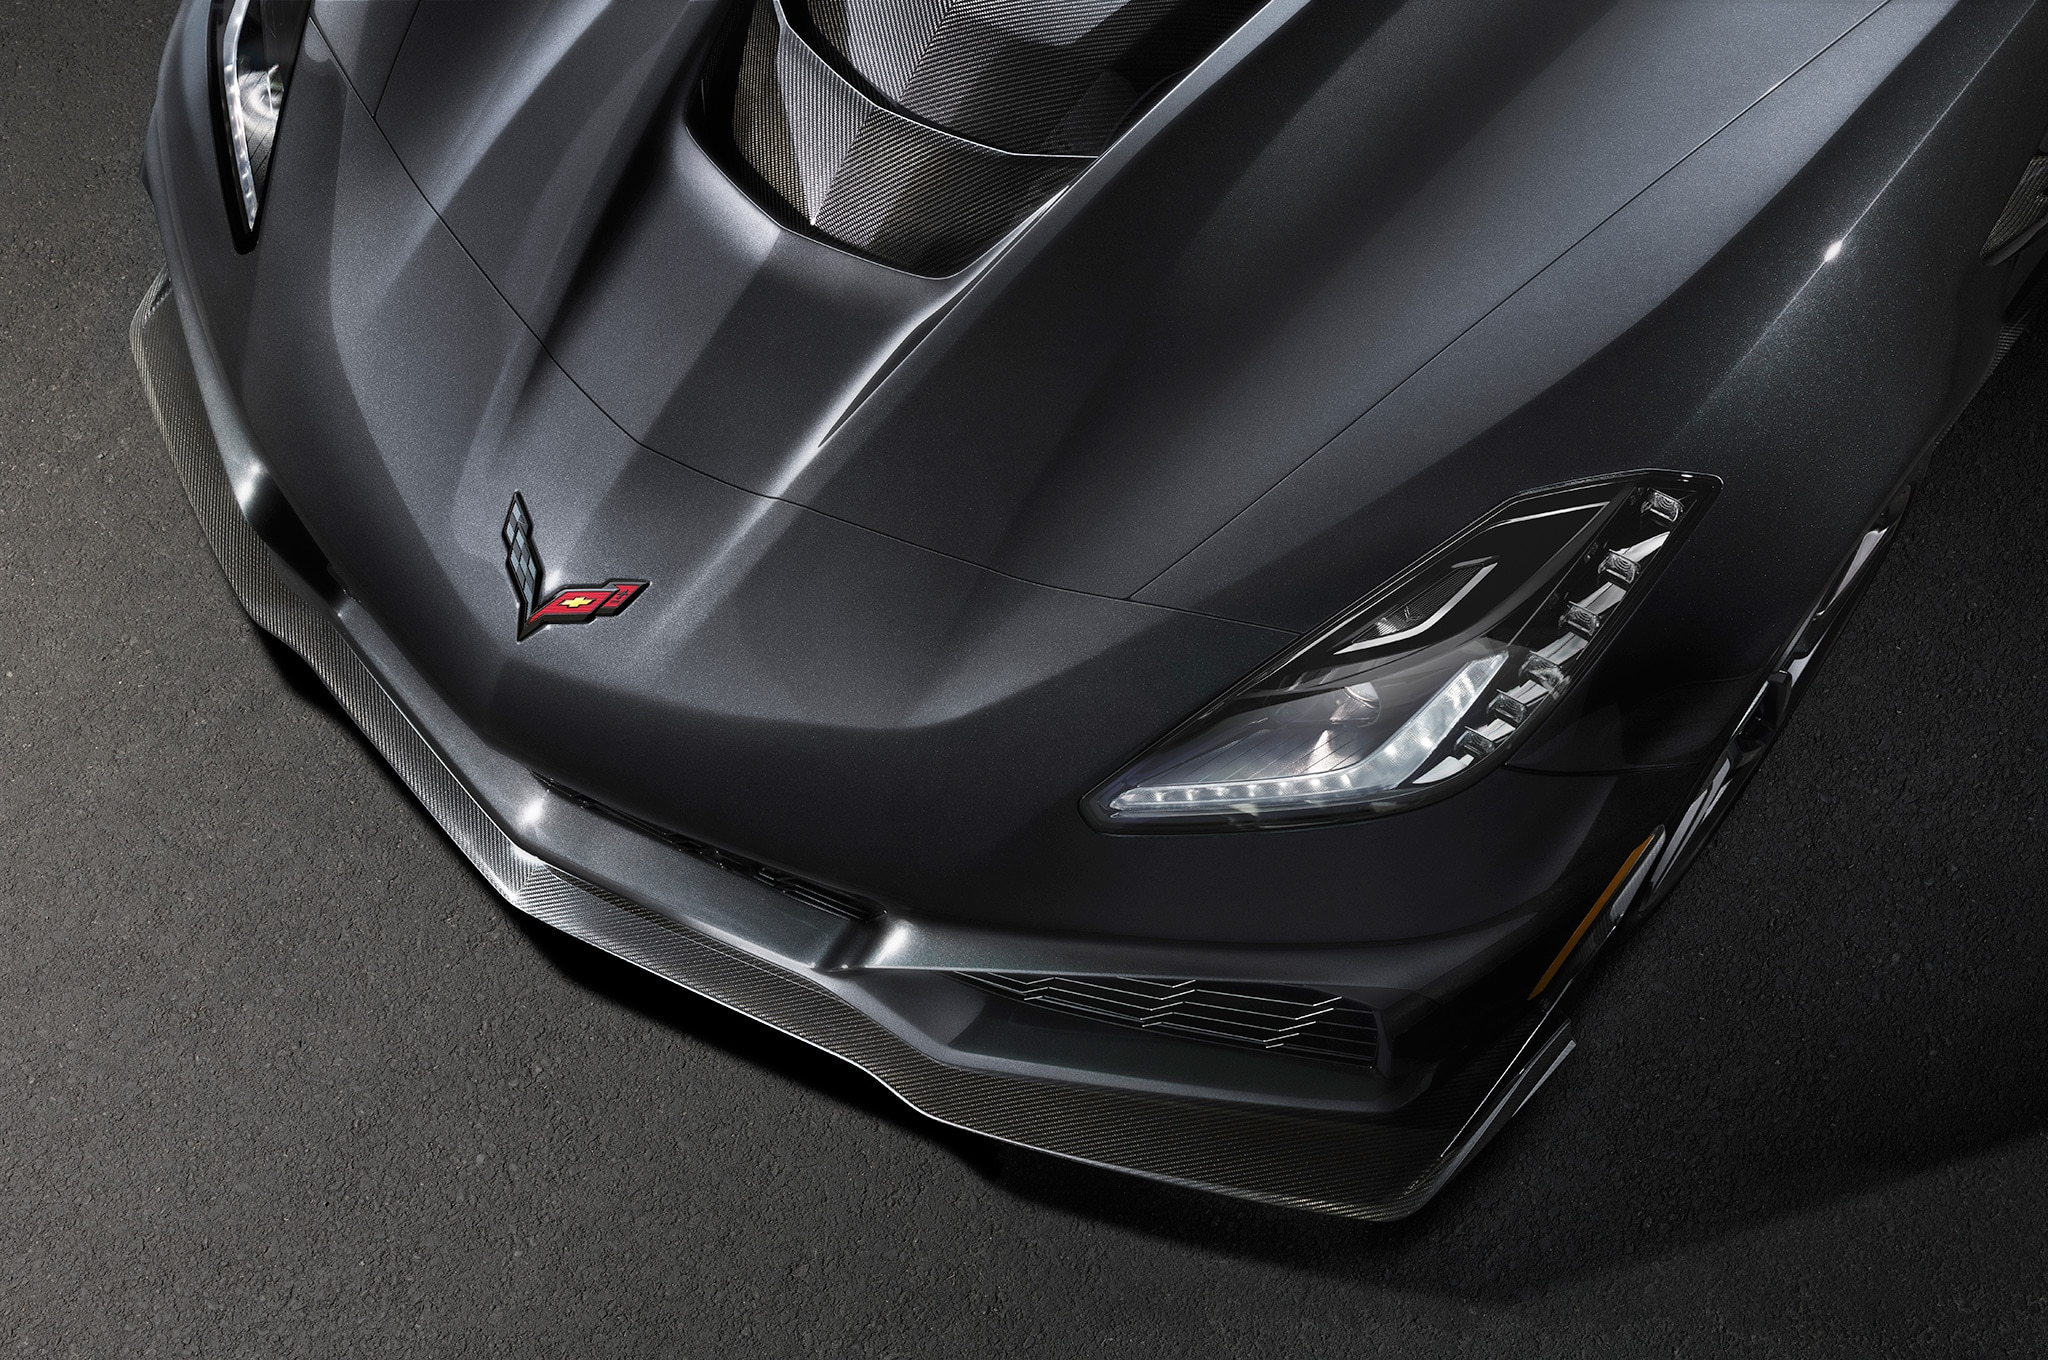 Chevrolet just revealed the most powerful Corvette in history (GM)